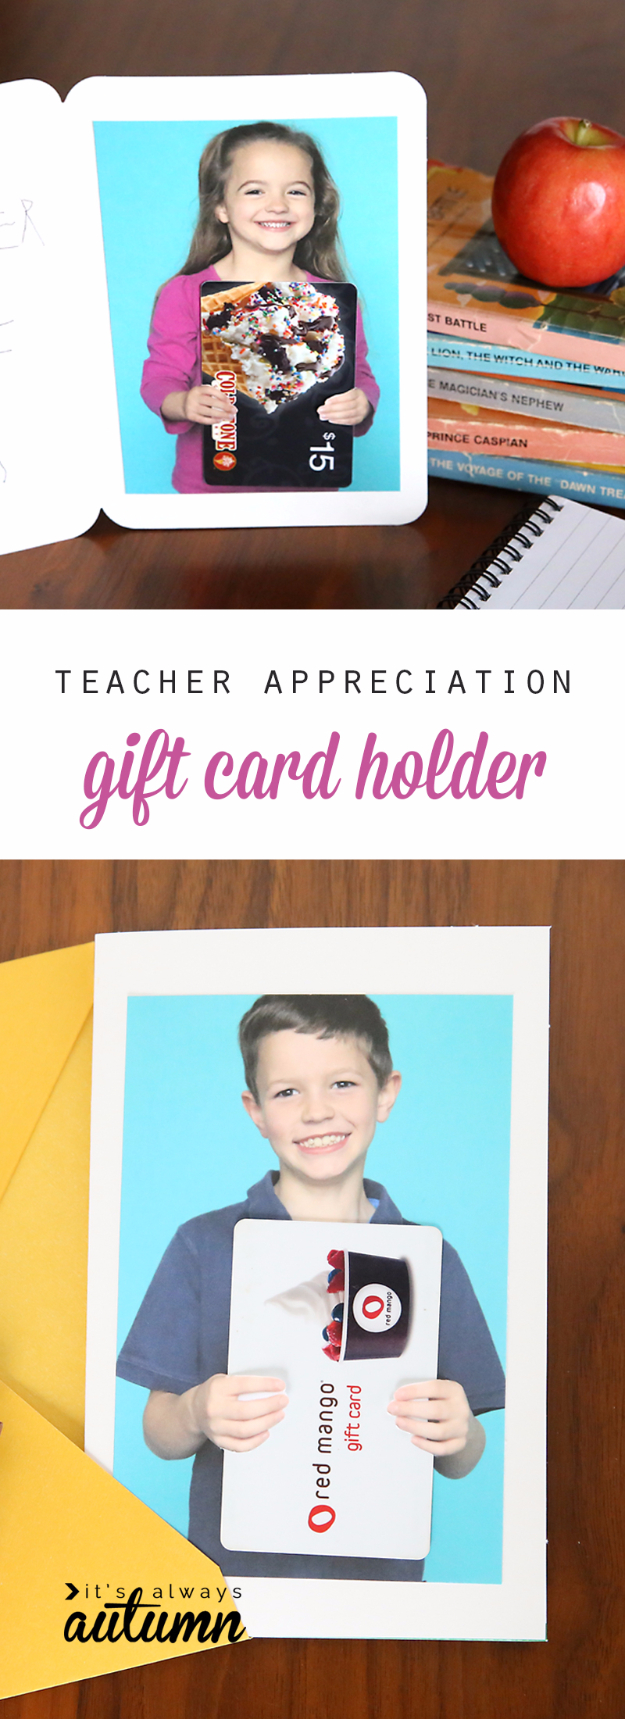 DIY Teacher Gifts - Photo Gift Card Holder - Cheap and Easy Presents and DIY Gift Ideas for Teachers at Christmas, End of Year, First Day and Birthday - Teacher Appreciation Gifts and Crafts - Cute Mason Jar Ideas and Thoughtful, Unique Gifts from Kids http://diyjoy.com/diy-teacher-gifts